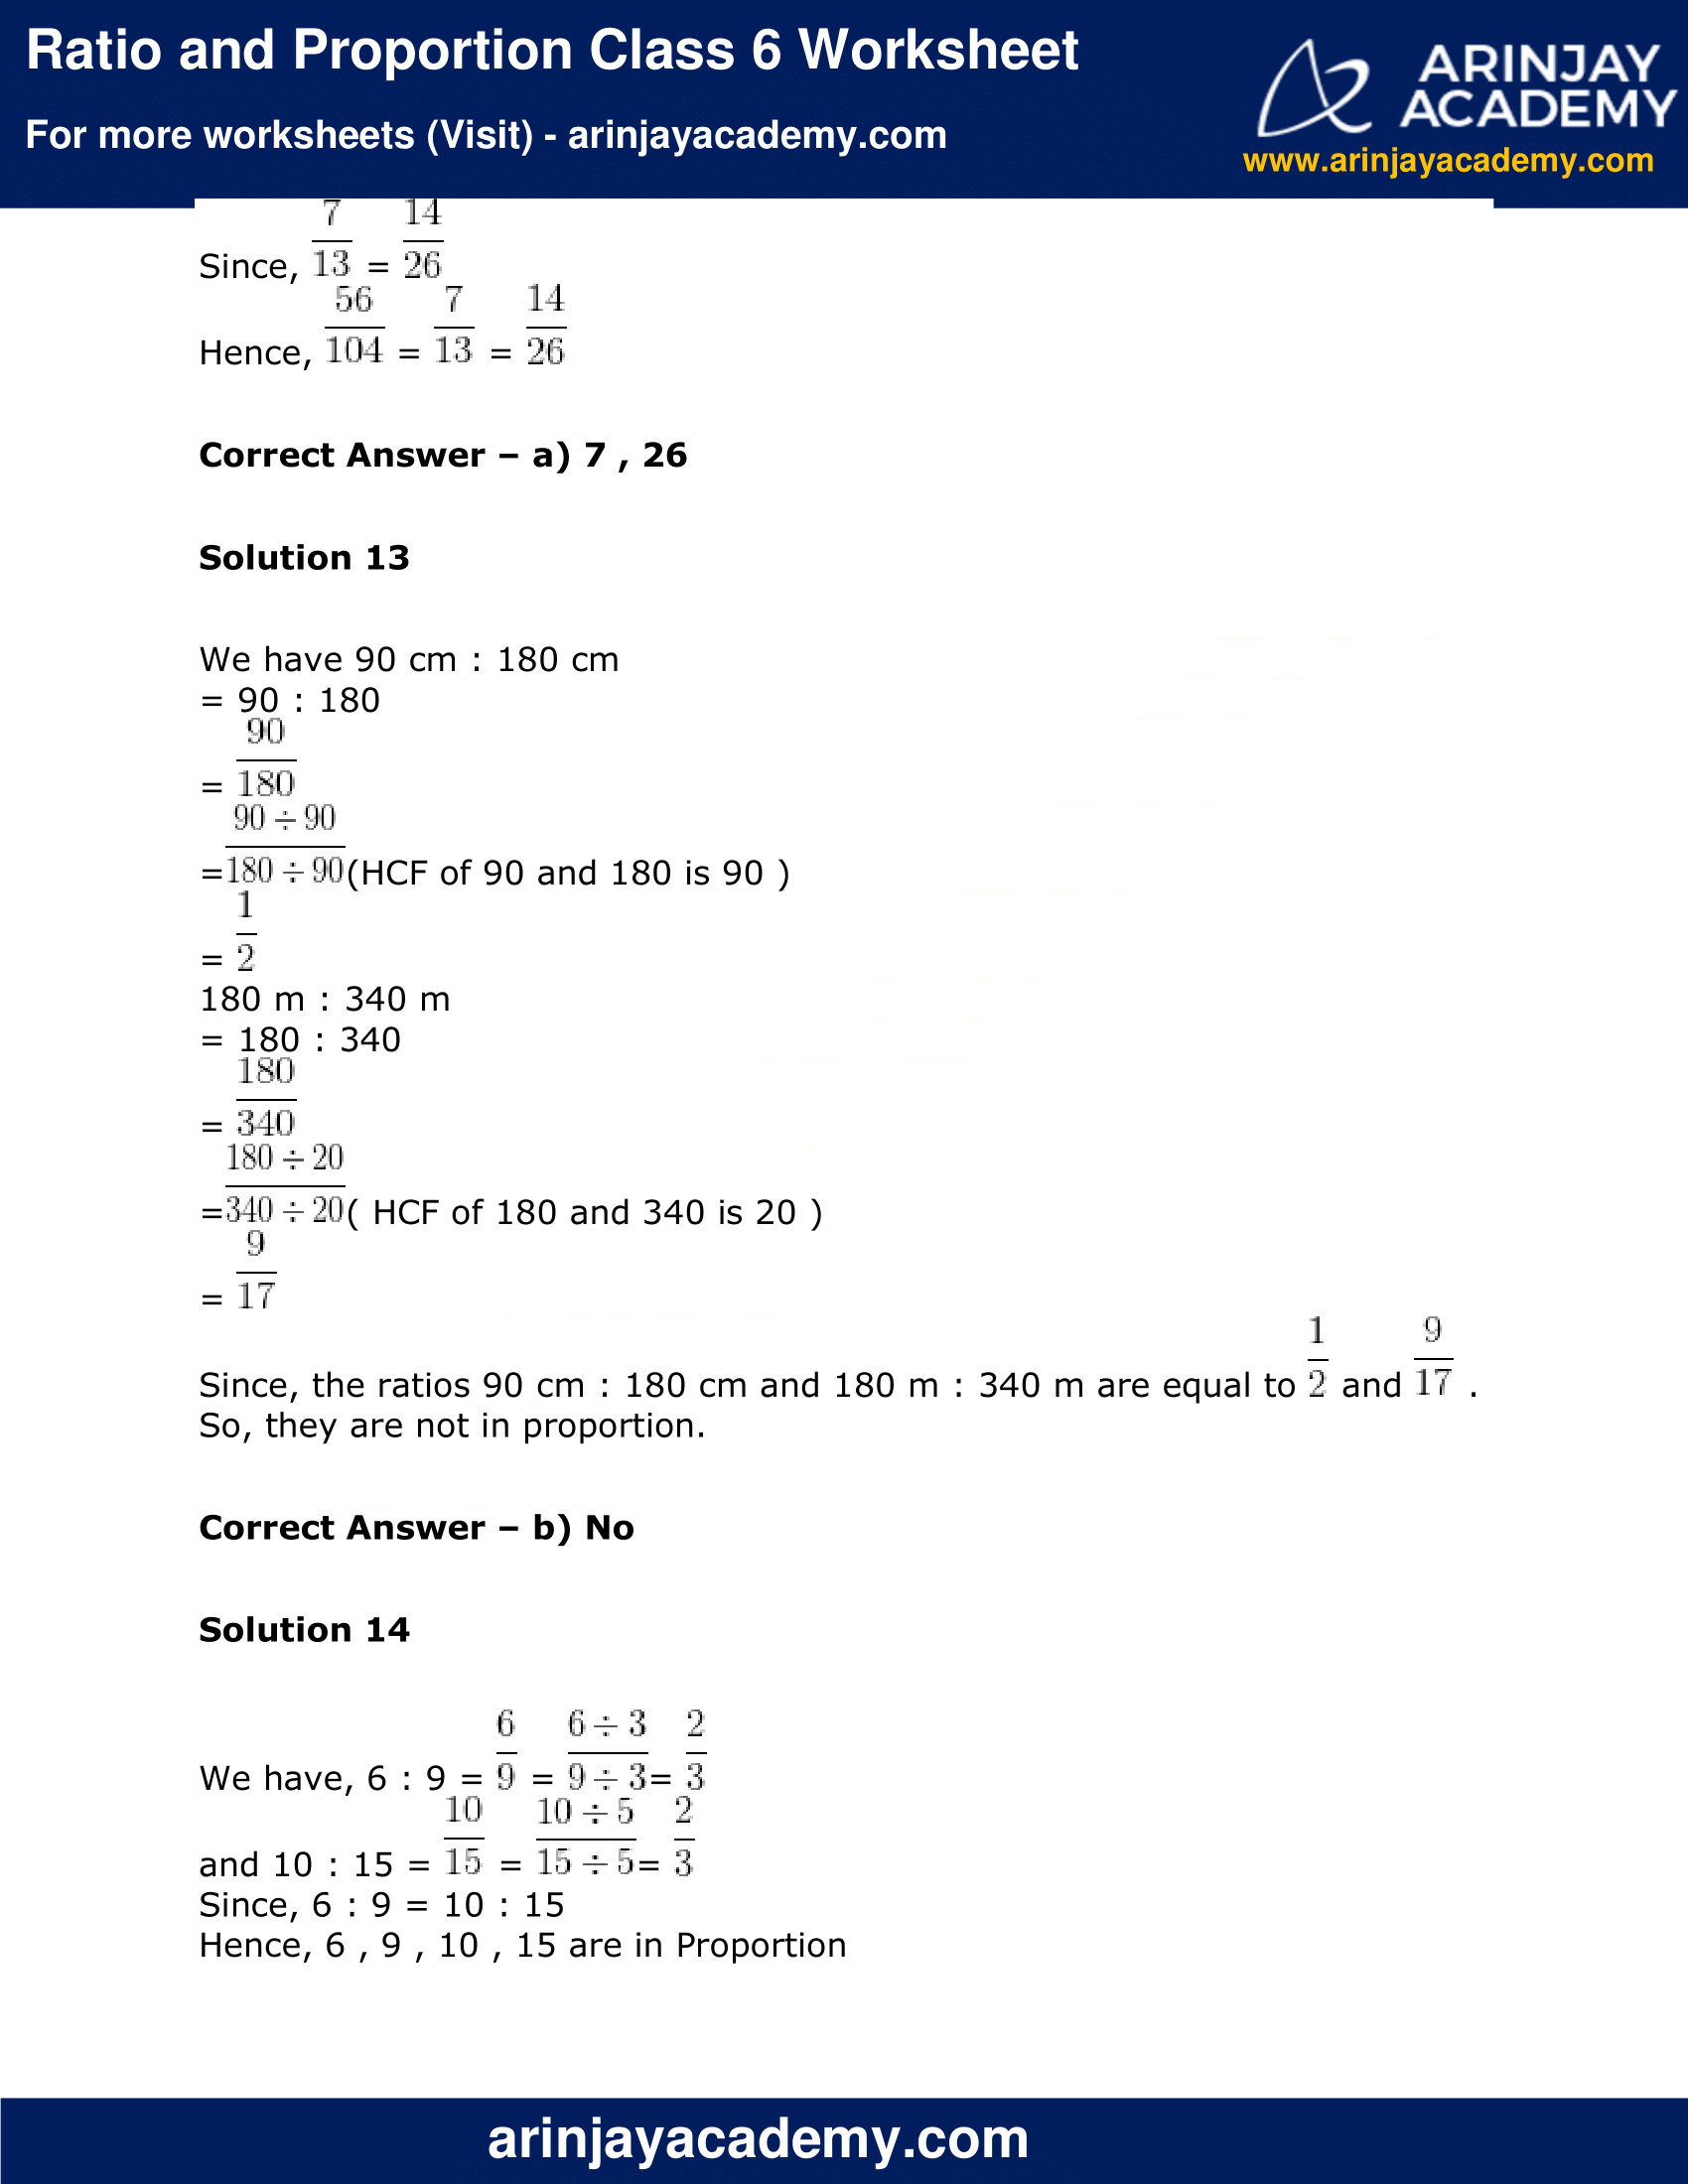 Ratio and Proportion Class 6 Worksheet image 10